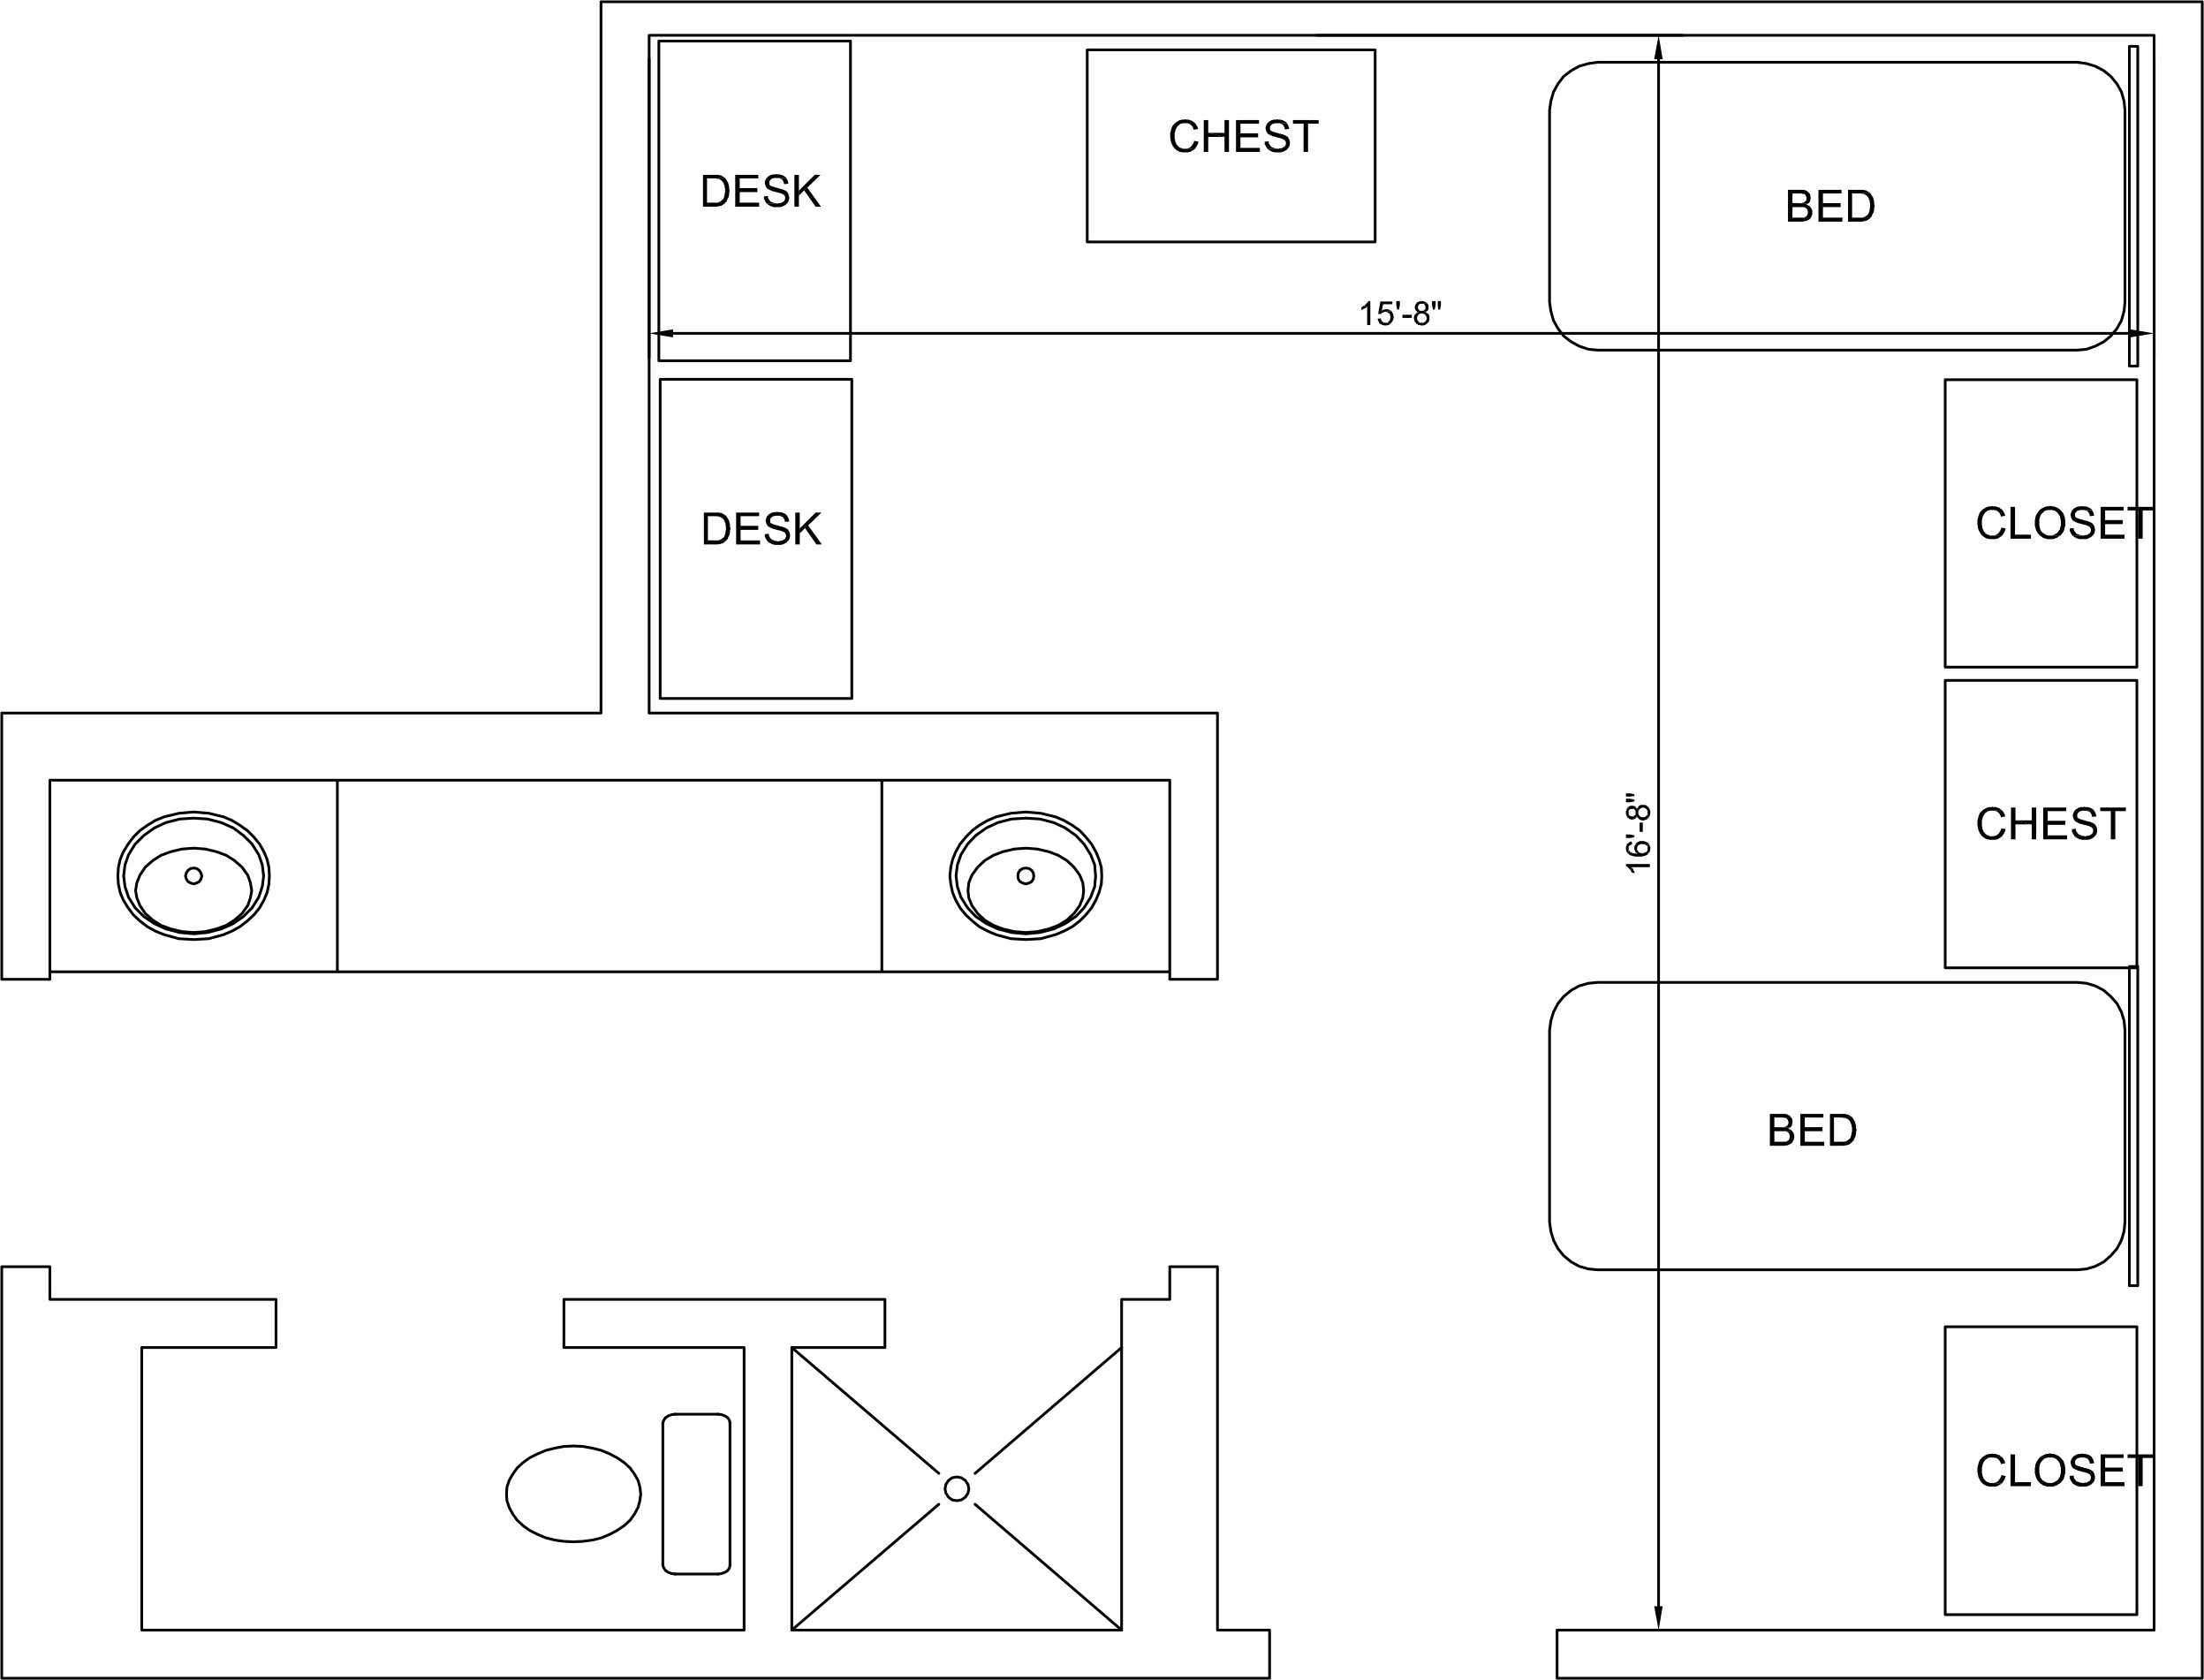 Cowart Hall Floorplan